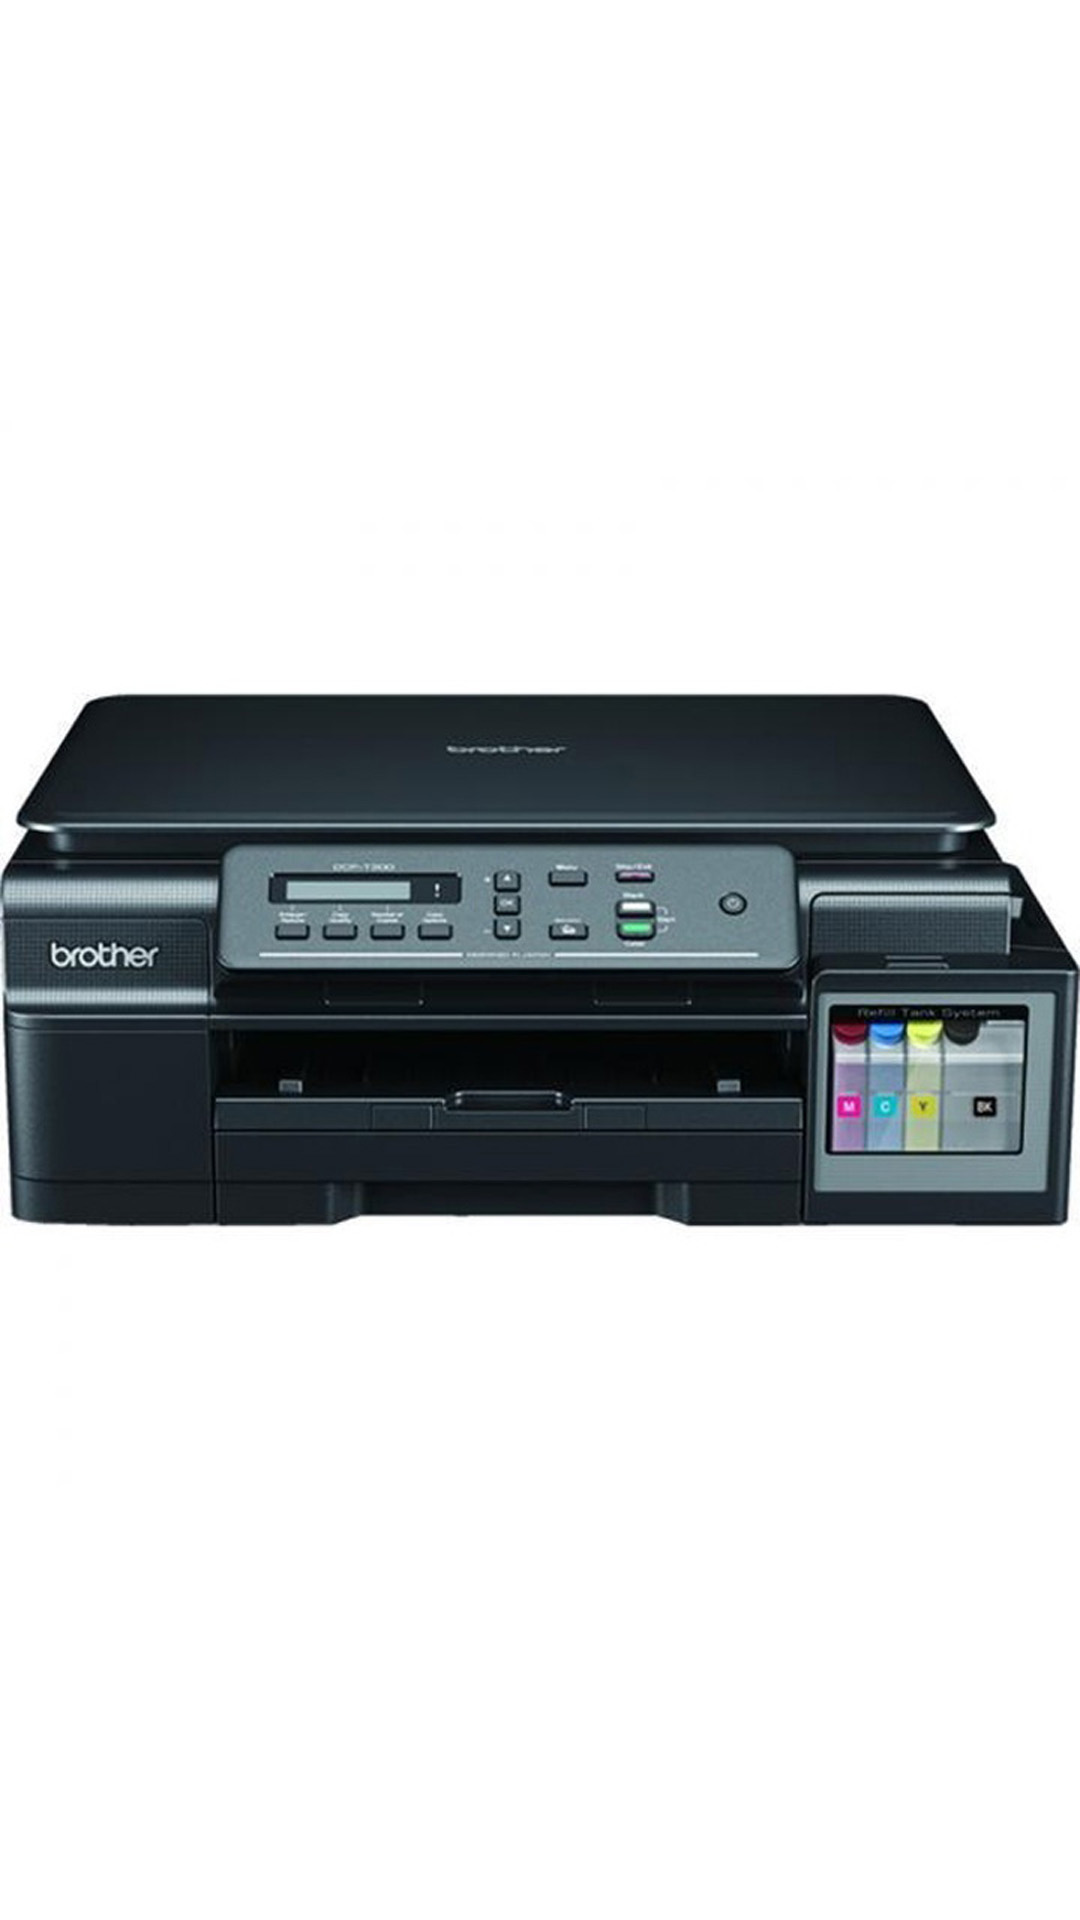 Brother DCP-T300 Multi-Function Inkjet Printer